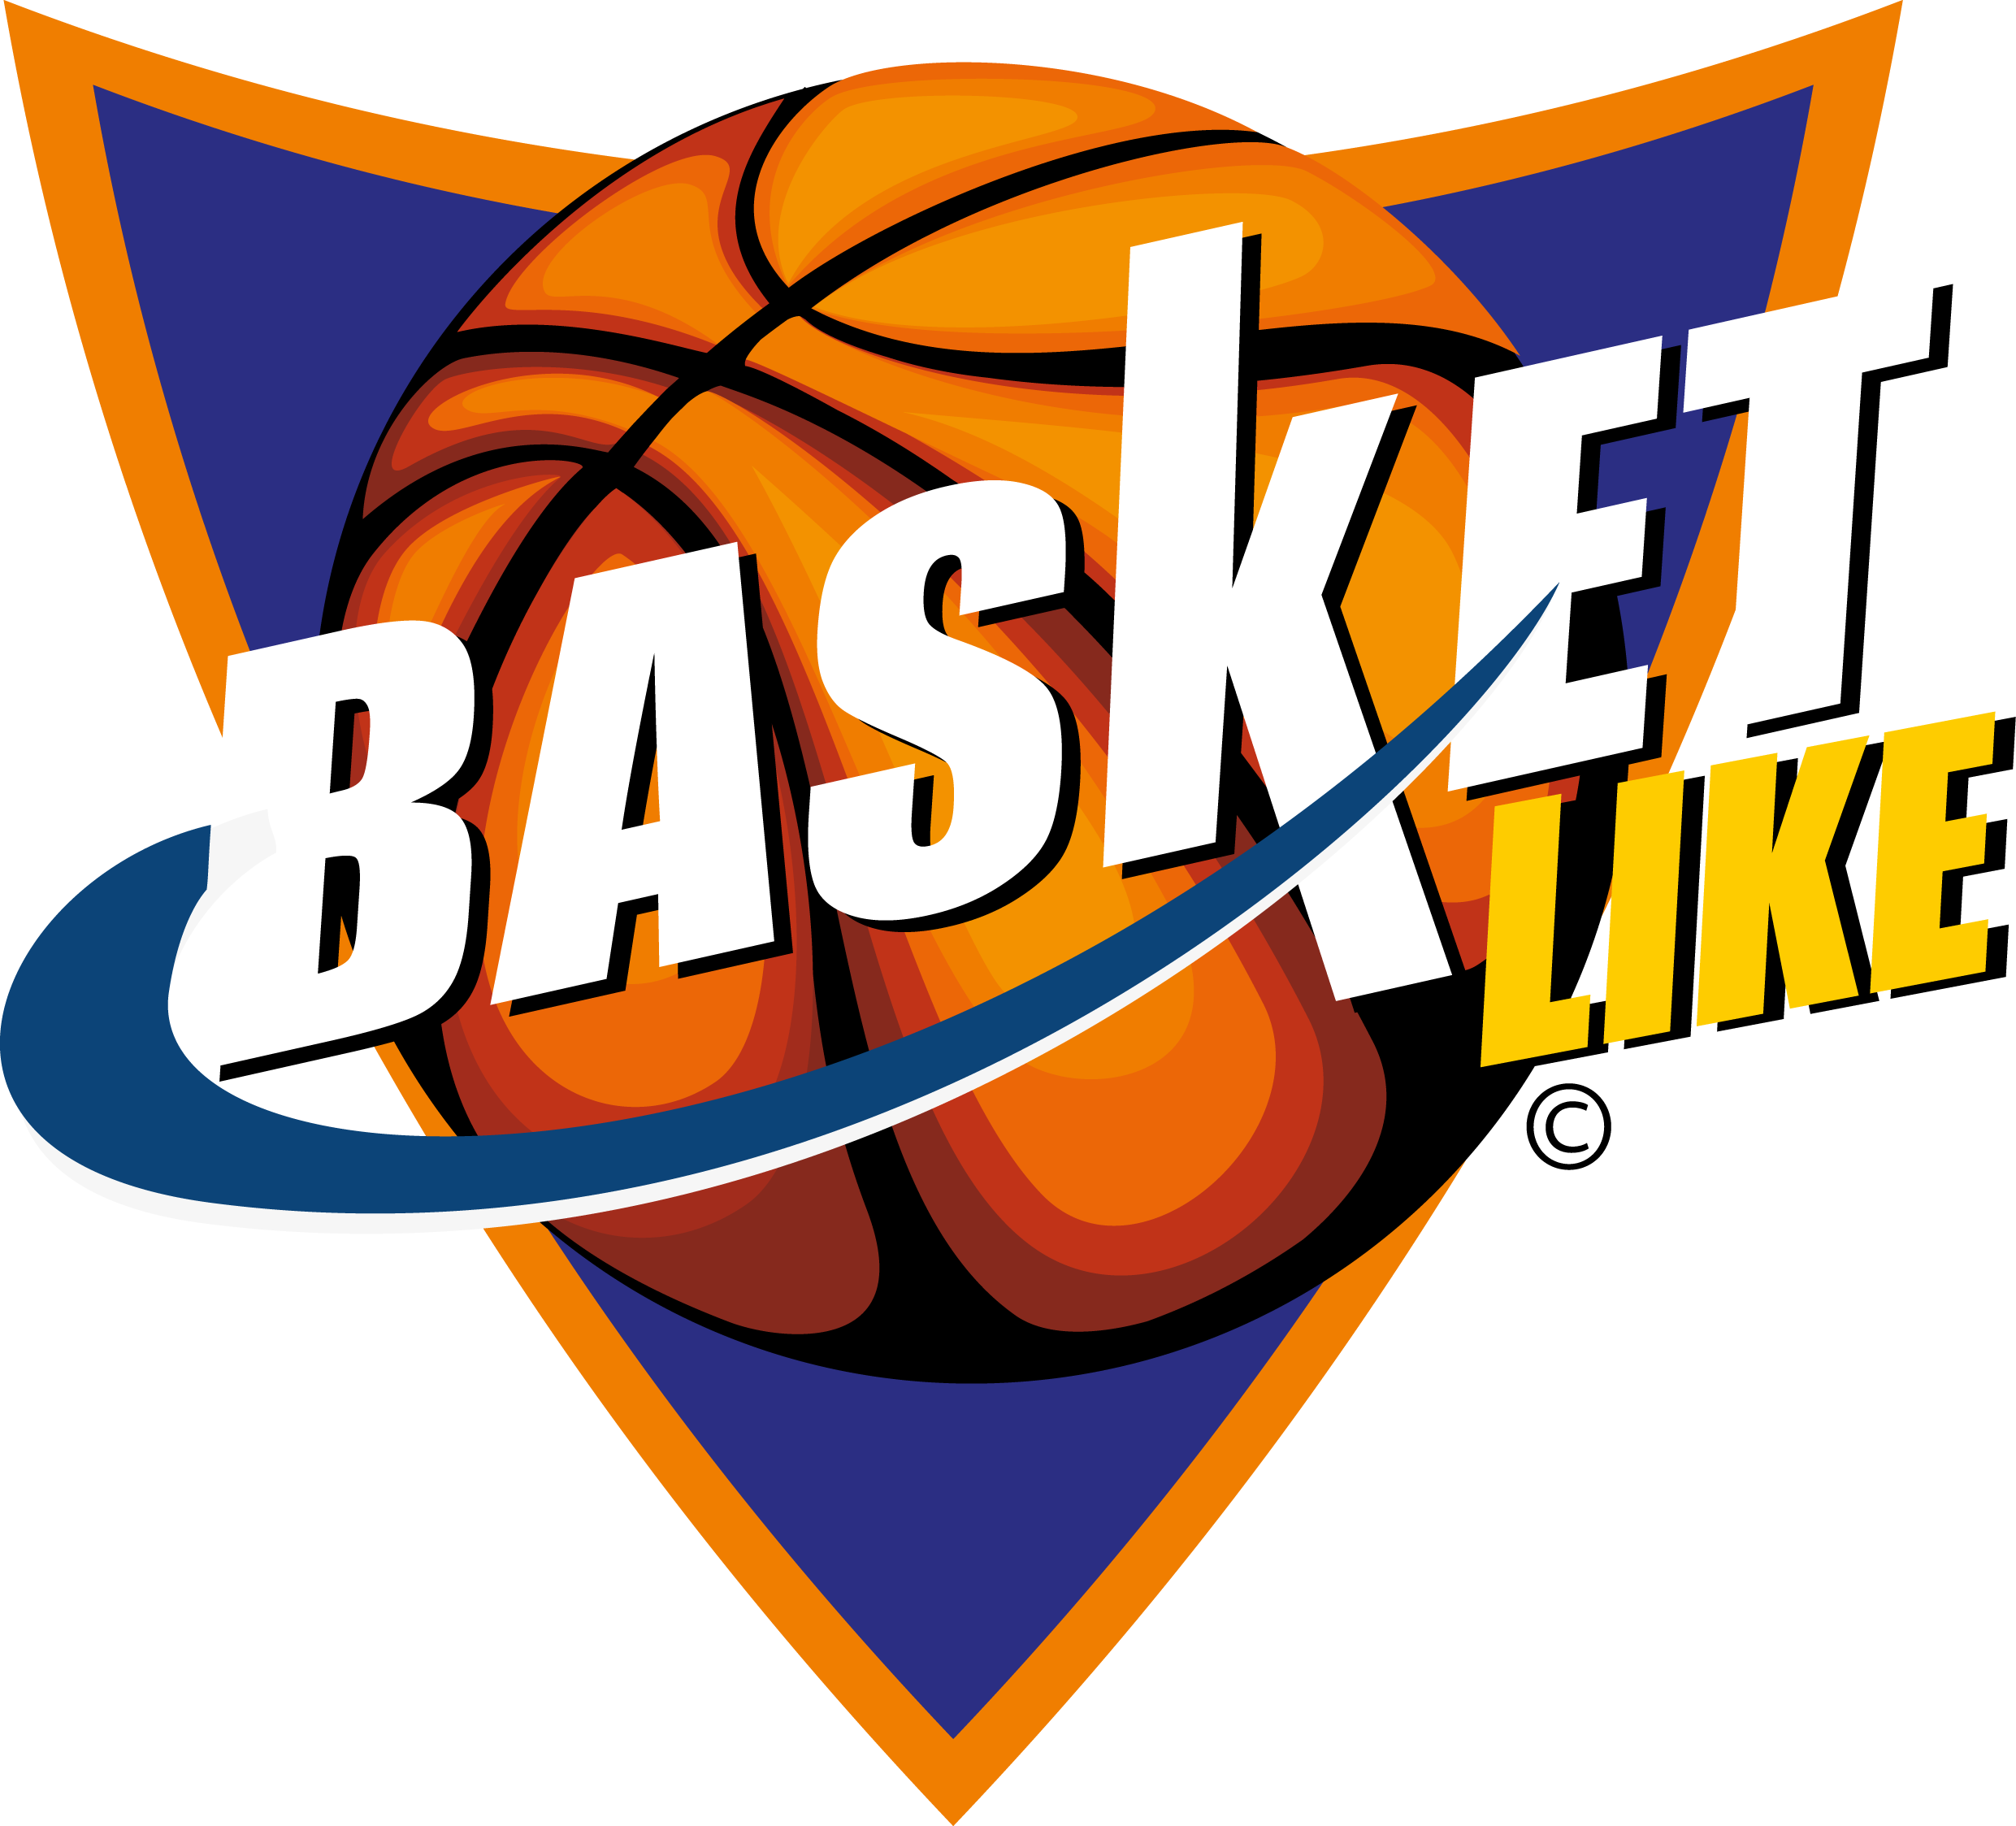 Logo BasketLIKE